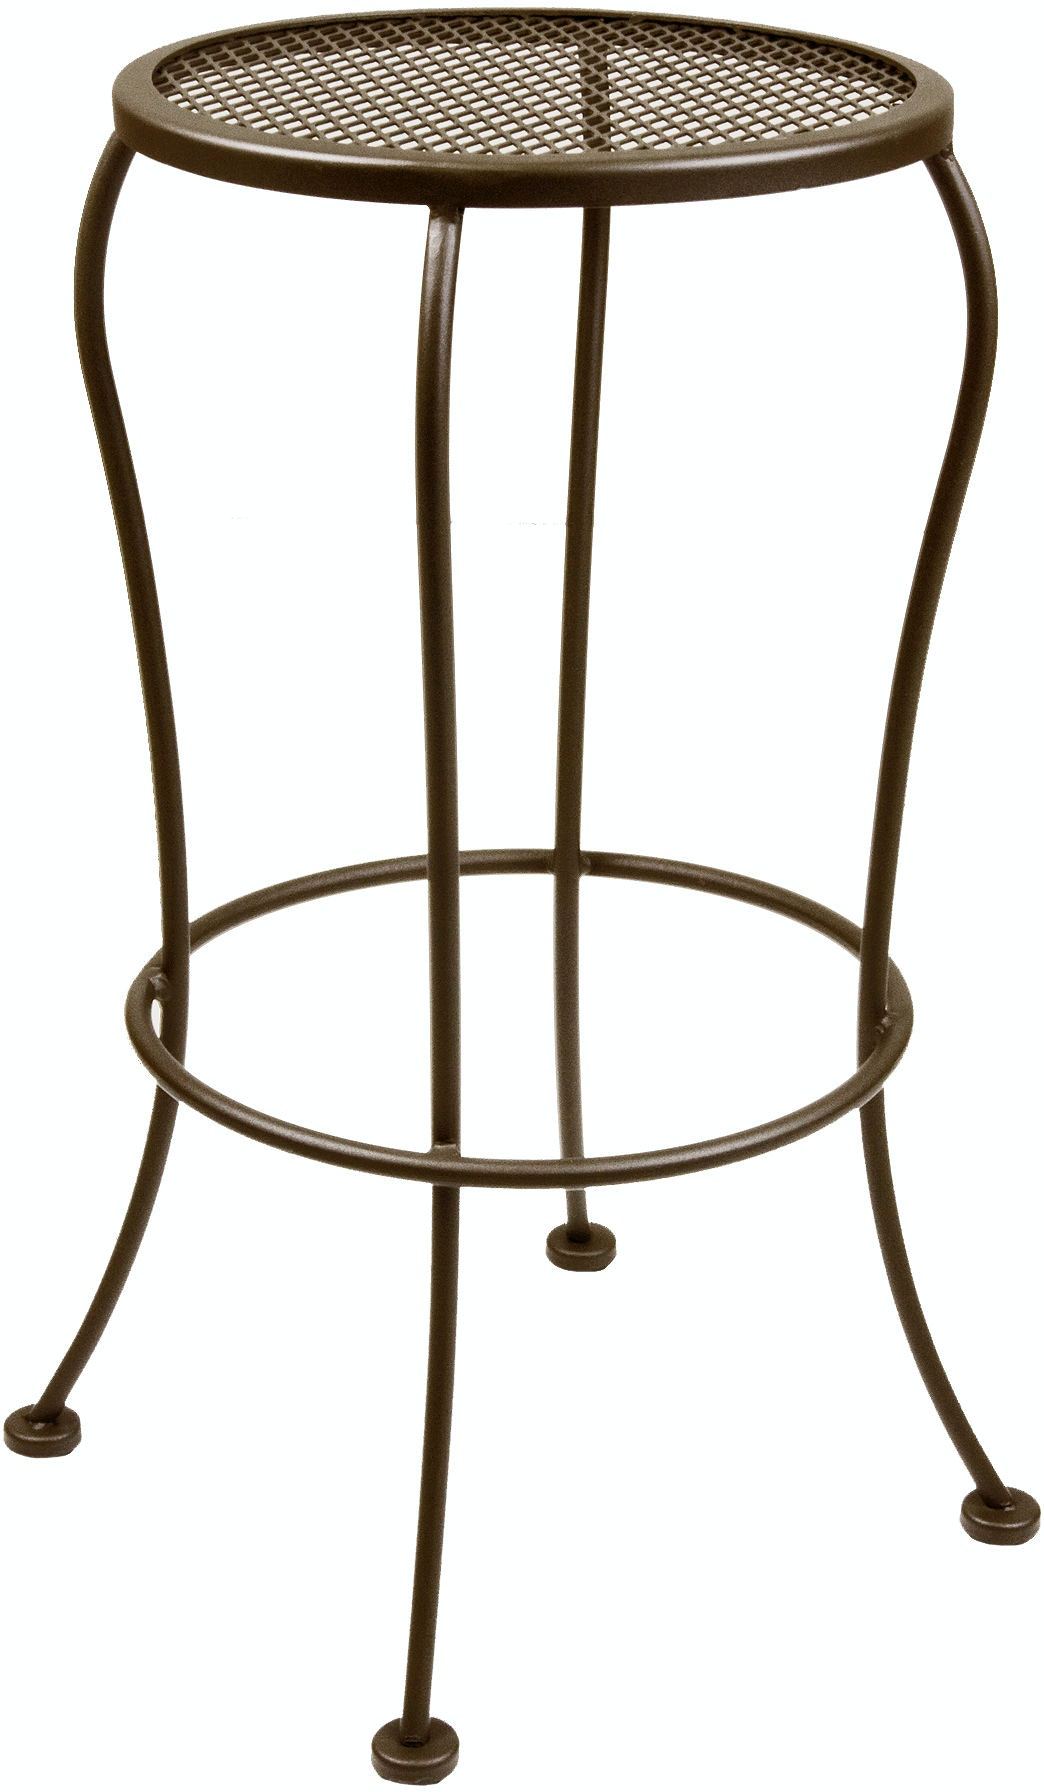 Ow Lee Outdoor Patio Backless Bar Stool 12 Mbs Zing